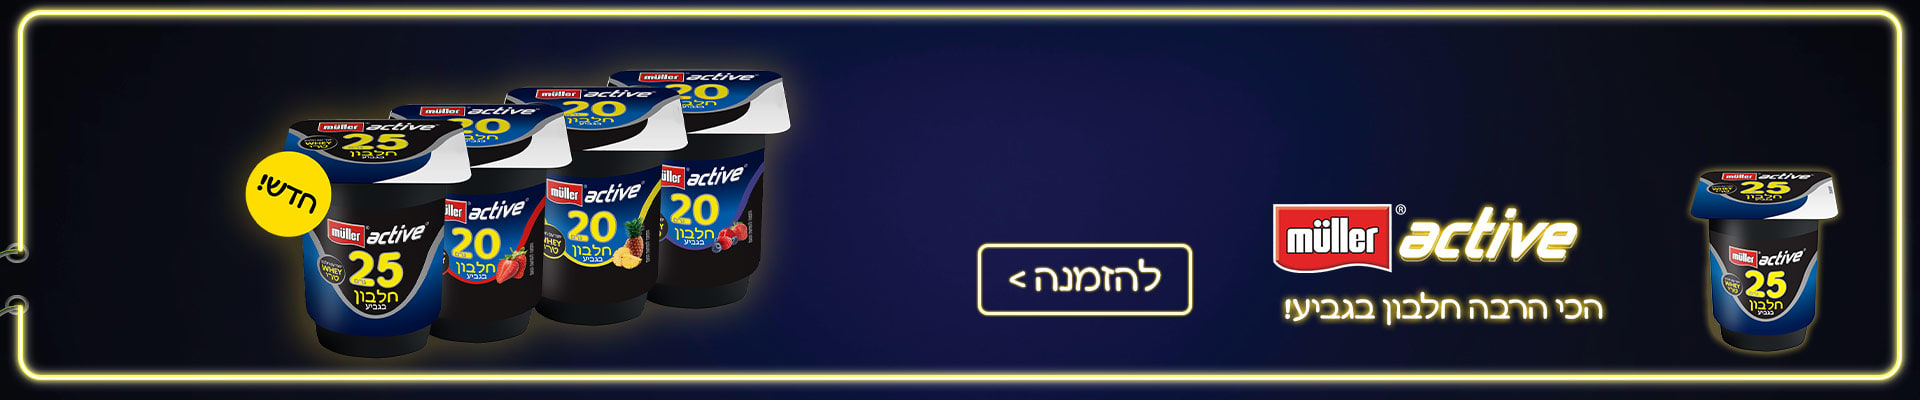 MULLER ACTIVE הכי הרבה חלבון בגביע!